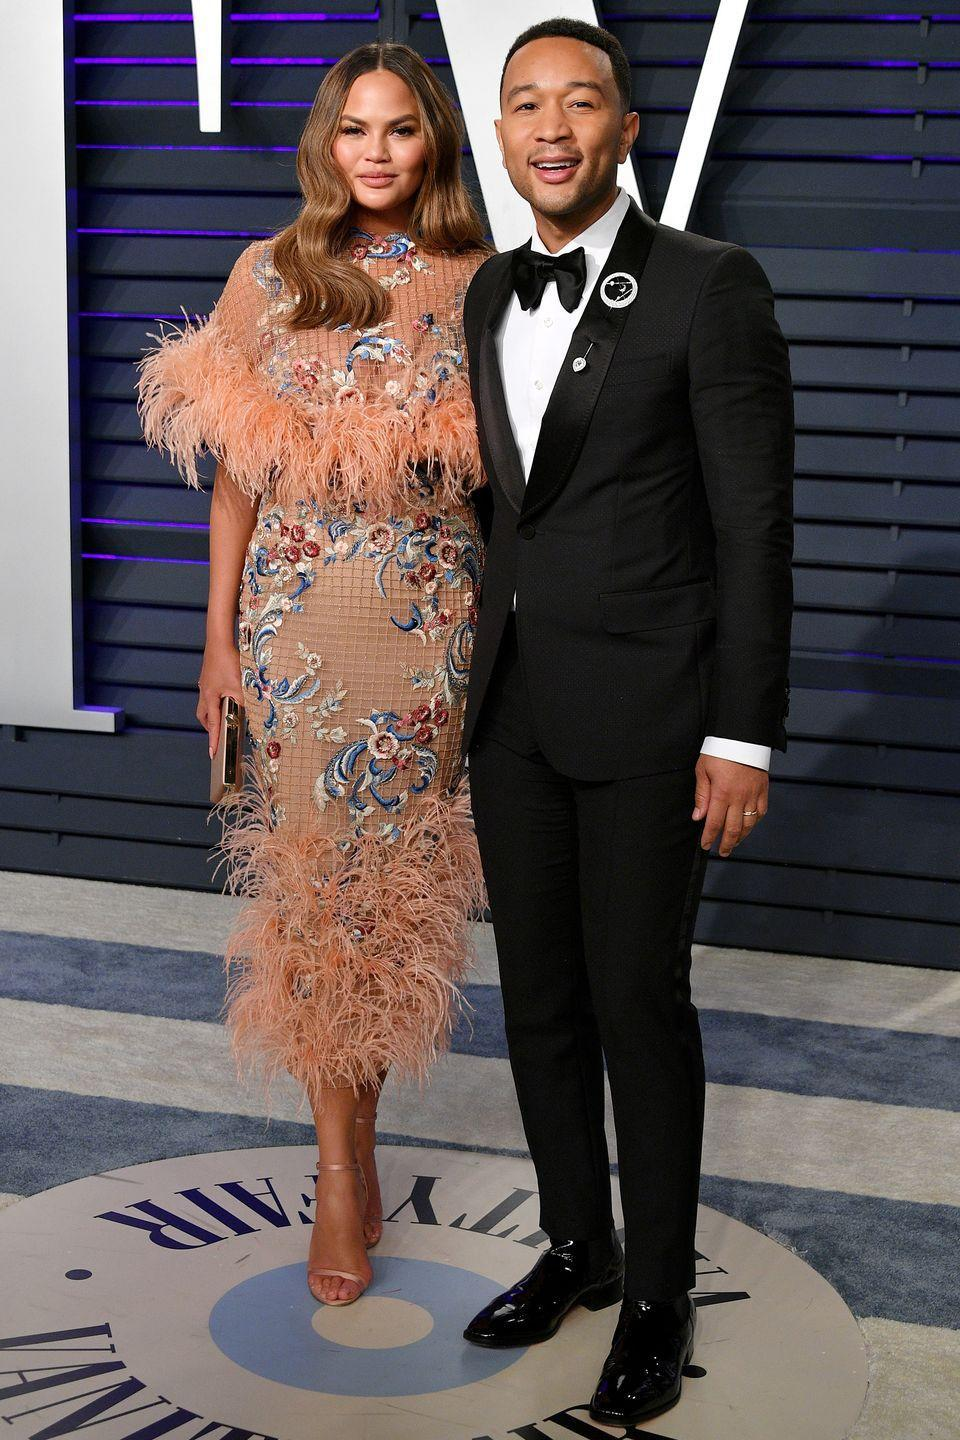 "<p>Model and unofficial Twitter queen Chrissy Teigen and EGOT winner John Legend are an adorable, low-key couple who love to share their <a href=""https://www.harpersbazaar.com/celebrity/red-carpet-dresses/g7130/chrissy-teigen-and-john-legend-photos/"" rel=""nofollow noopener"" target=""_blank"" data-ylk=""slk:family adventures"" class=""link rapid-noclick-resp"">family adventures</a> on social media. The two first met on set of Legend's 2007 ""Stereo"" music video, where Teigen played his love interest. ""We did the music video, we were together for like 12 hours,"" Teigen <a href=""https://www.youtube.com/watch?v=xNW1lBhoHYY"" rel=""nofollow noopener"" target=""_blank"" data-ylk=""slk:told Wendy Williams"" class=""link rapid-noclick-resp"">told Wendy Williams</a> in 2014. ""We spent the entire day together, me in my underwear and him in a full suit, and I went to go say goodbye to him, to his hotel and we didn't ever say goodbye that night.""</p><p>The two <a href=""http://time.com/5233865/chrissy-teigen-john-legend-relationship-timeline/"" rel=""nofollow noopener"" target=""_blank"" data-ylk=""slk:married"" class=""link rapid-noclick-resp"">married</a> September 2013 in Lake Como, and now have two children together: daughter Luna, and son Miles. </p>"